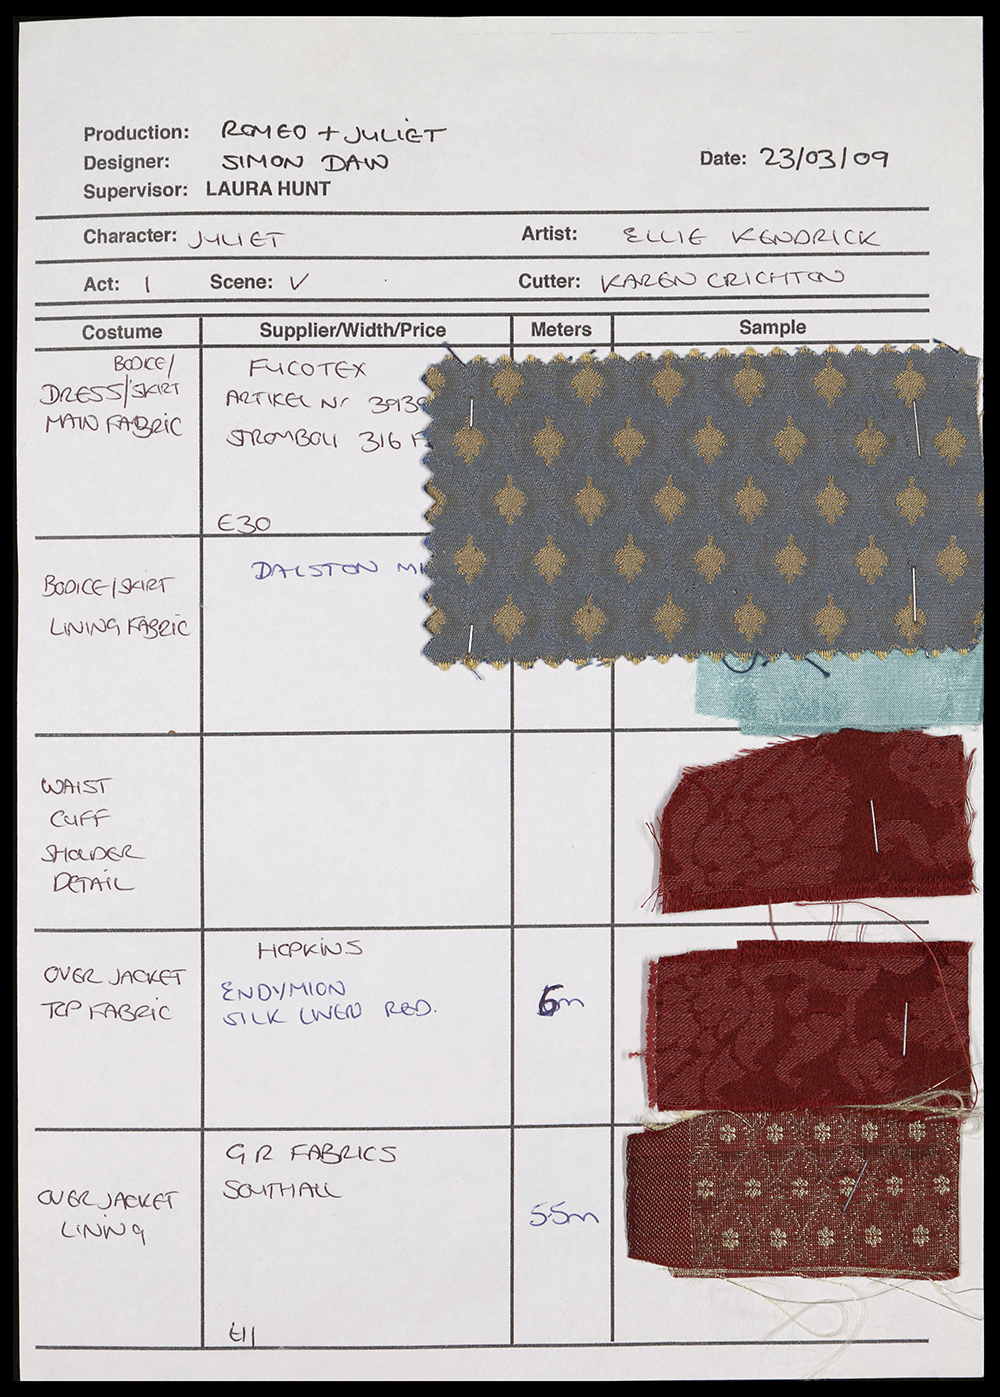 A sheet a paper detailing the costume list for a scene in Romeo and Juliet with fabric swatches.